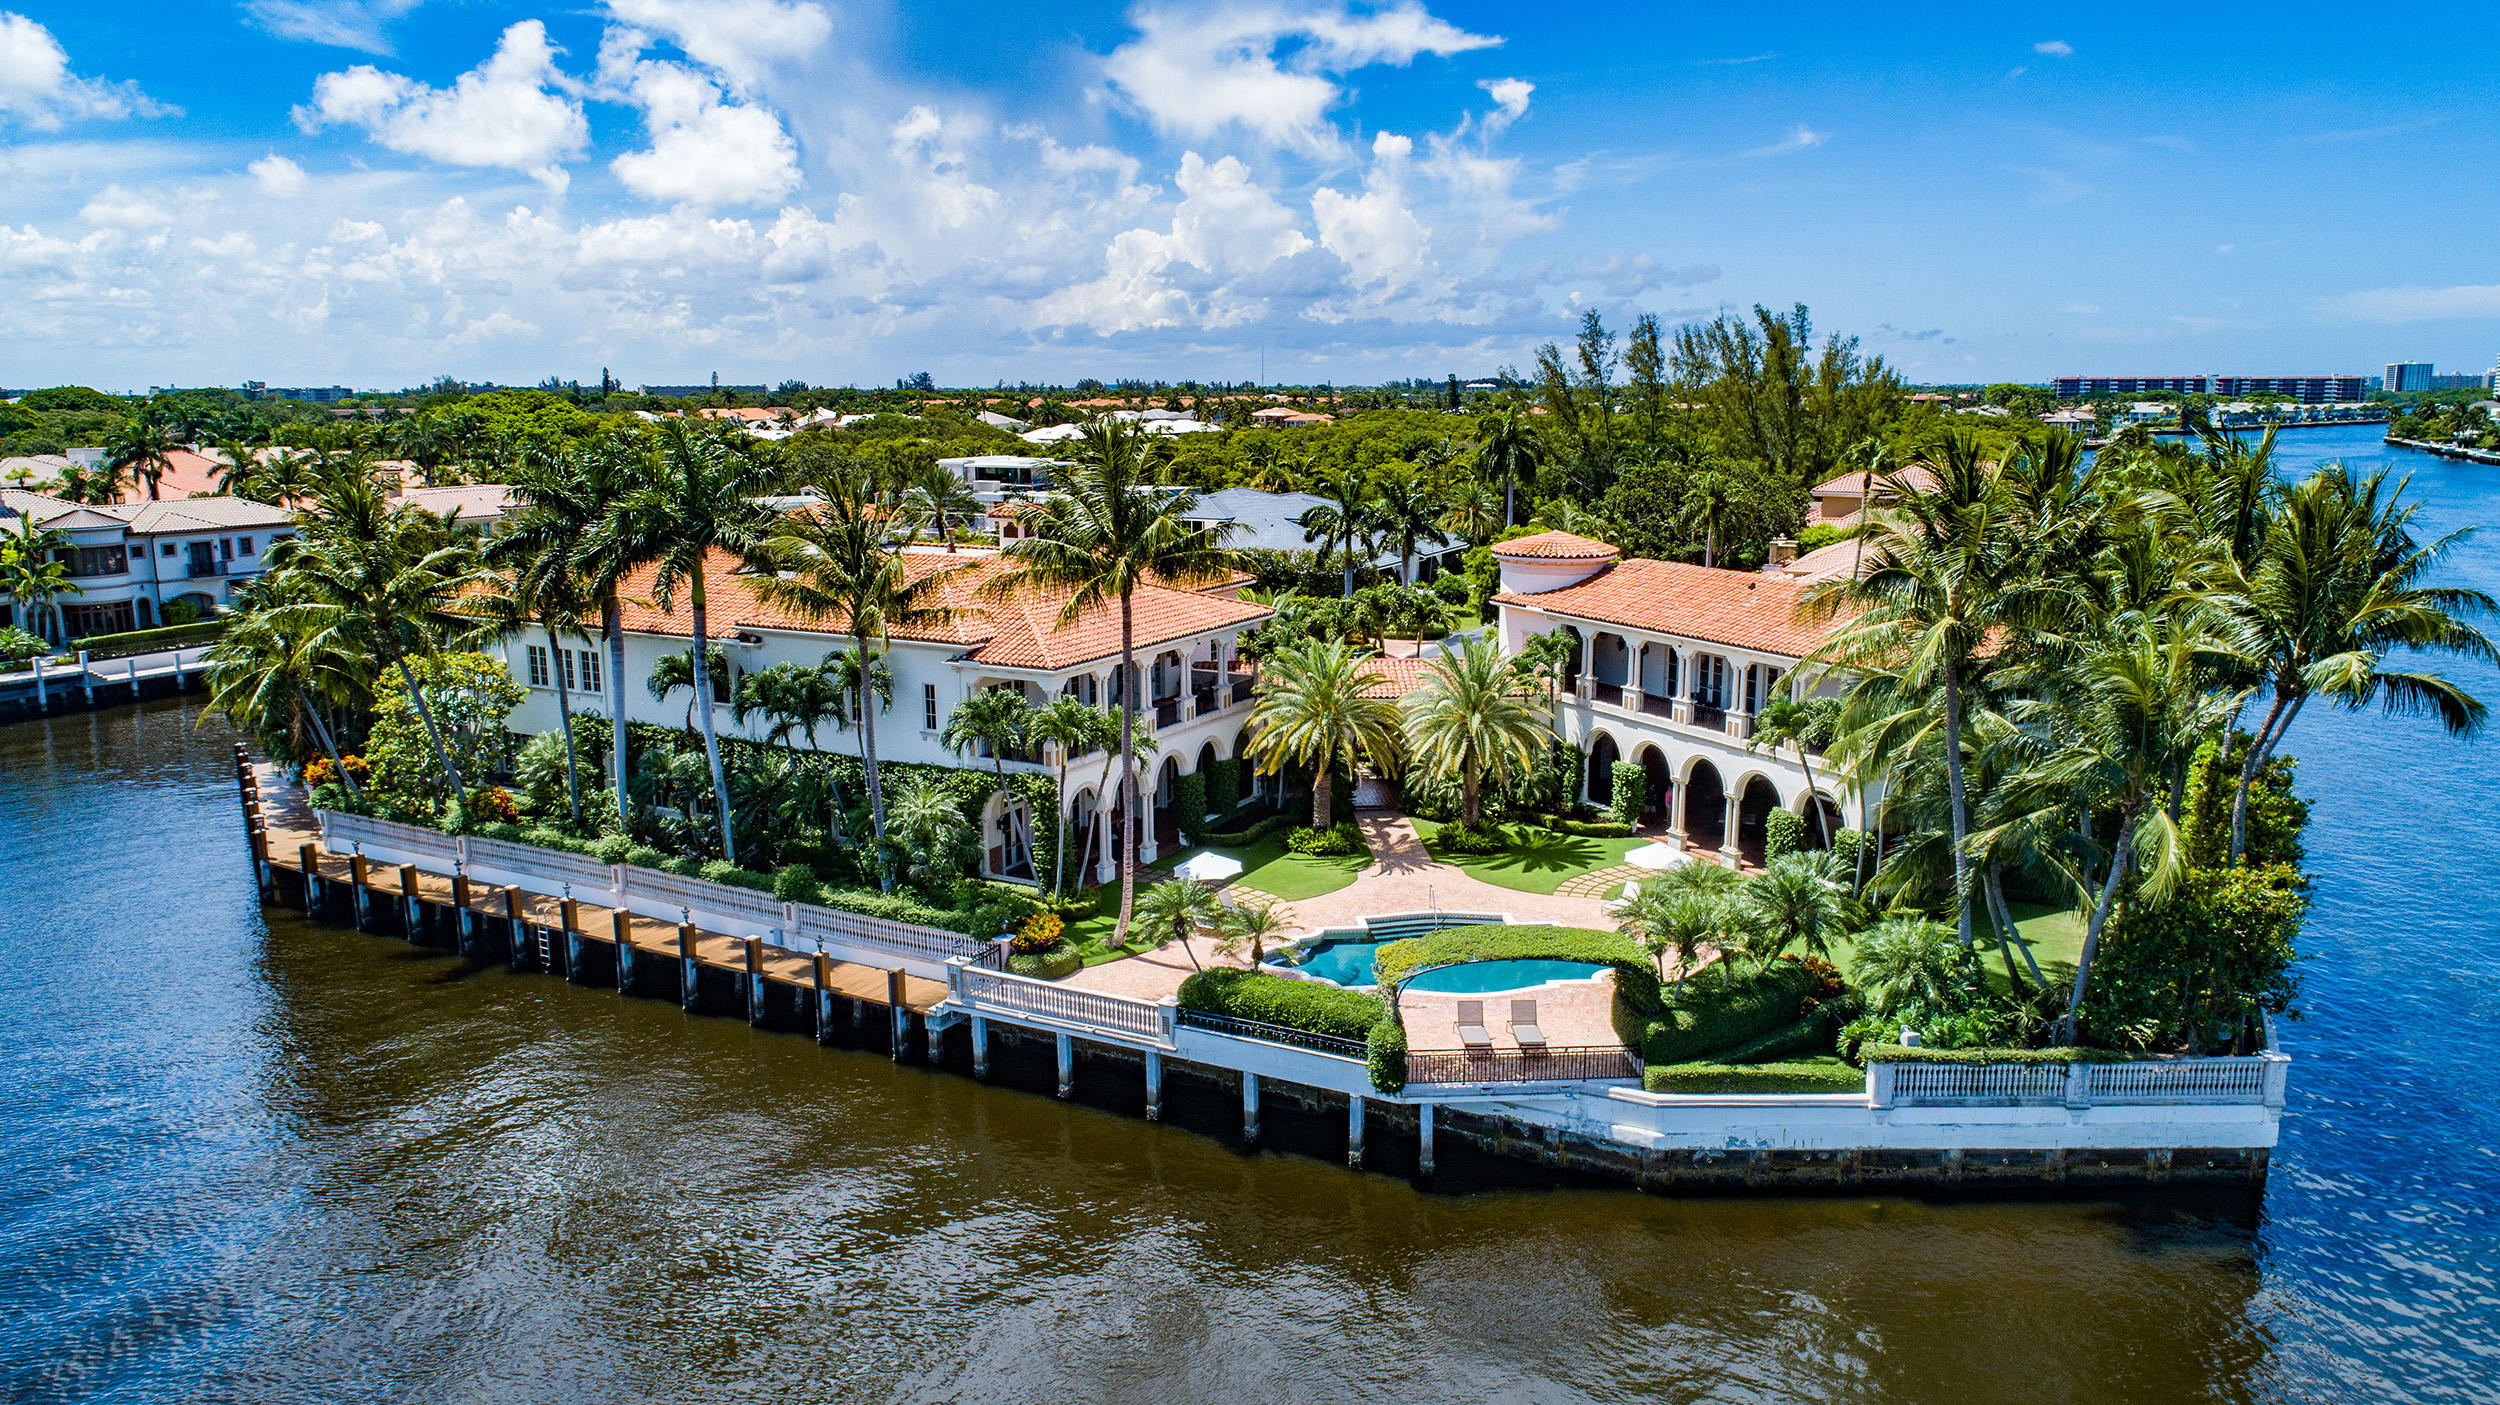 5001 Egret Point Circle, Boca Raton, Florida 33431, 7 Bedrooms Bedrooms, ,8 BathroomsBathrooms,Residential,for Sale,THE SANCTUARY,Egret Point,RX-10633894, , , ,for Sale